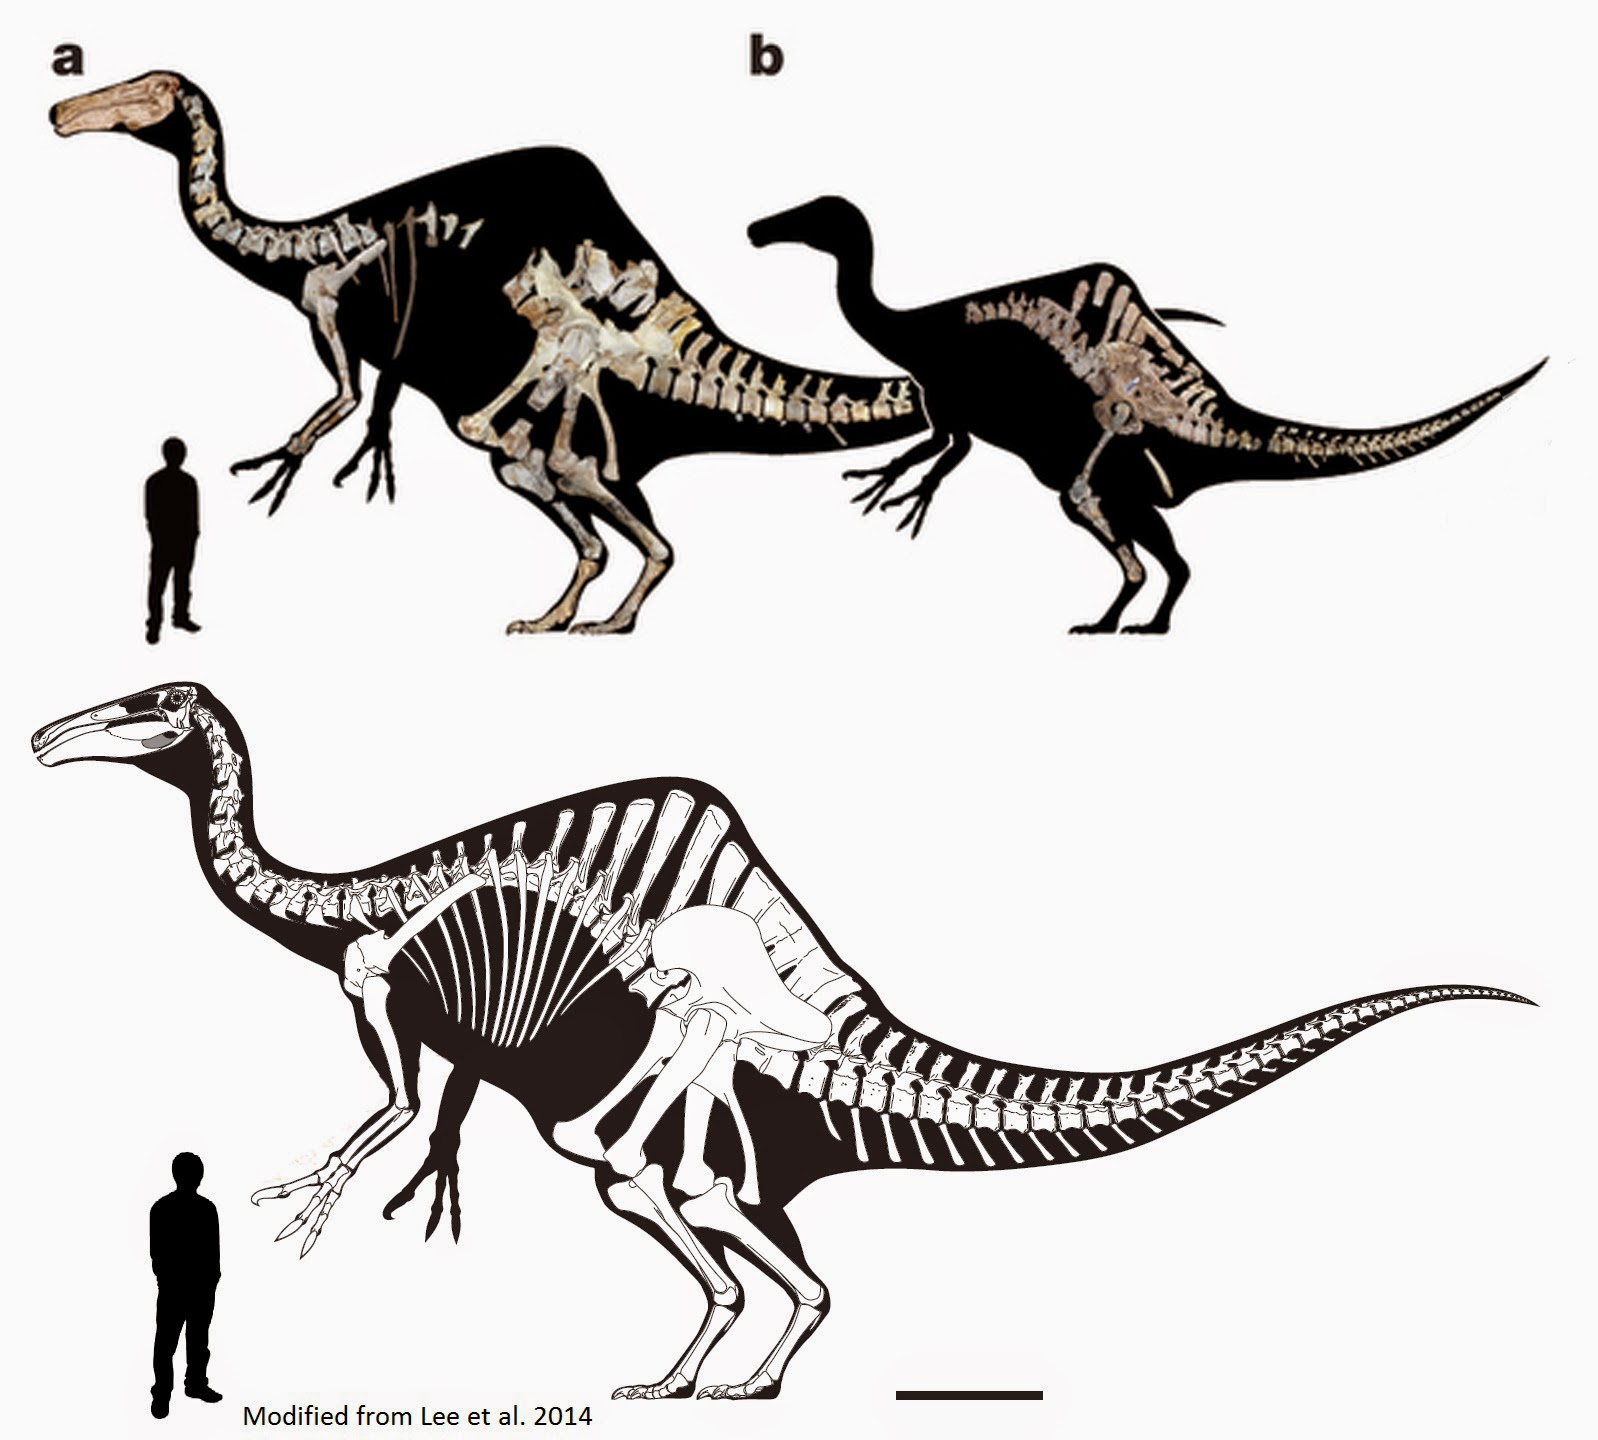 Supplementary Information for Holtz s Dinosaurs